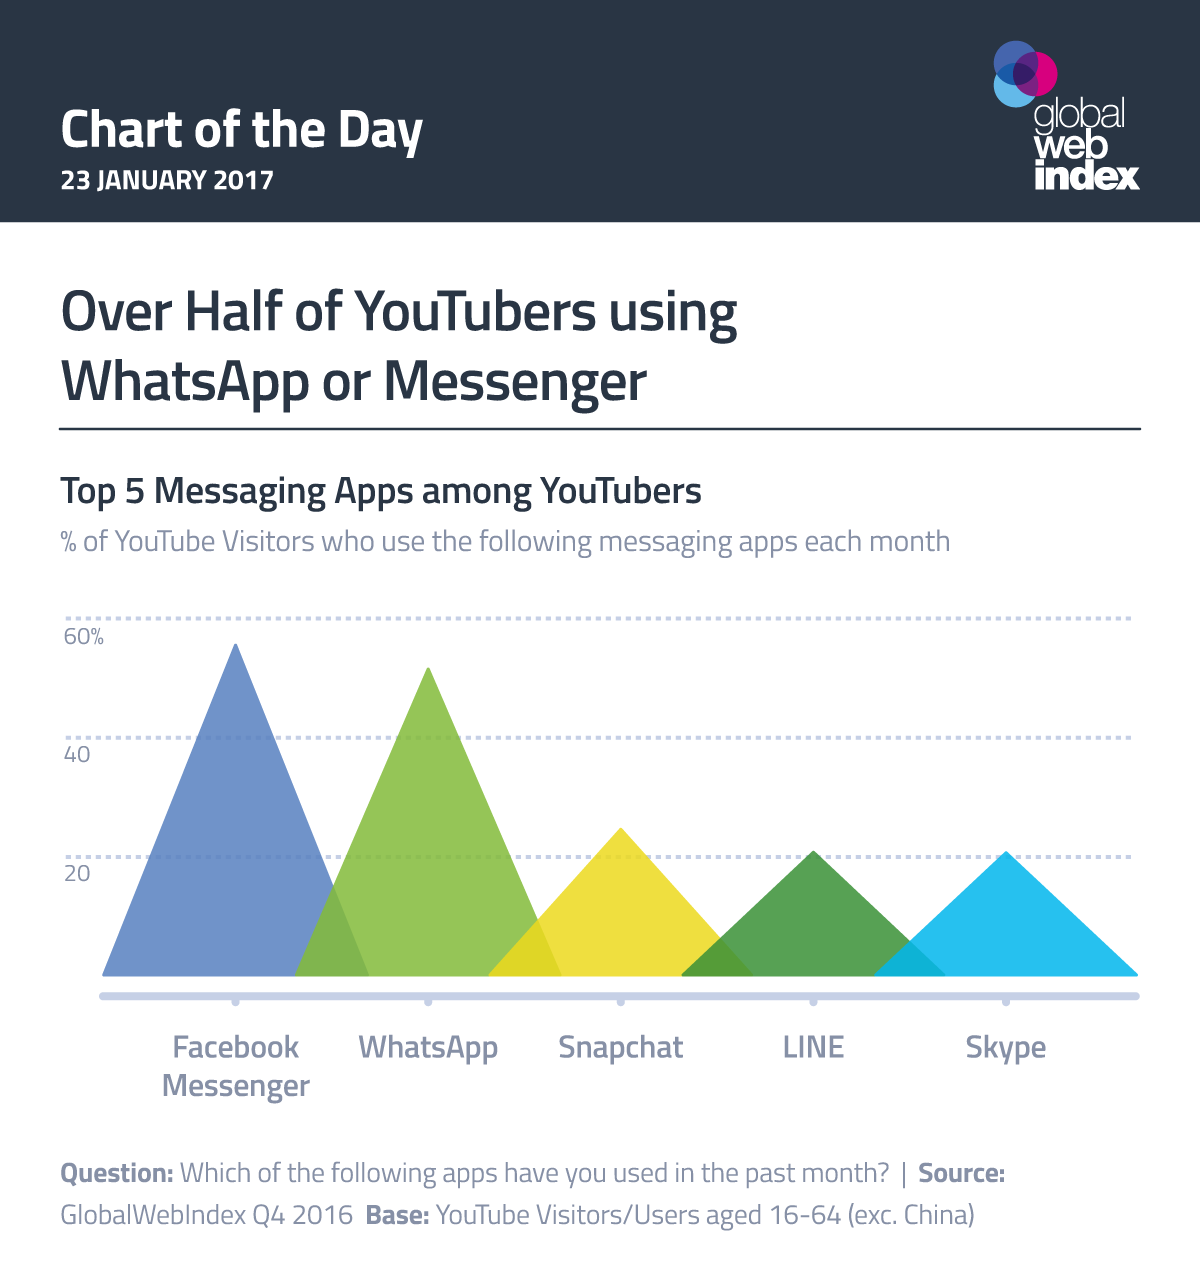 Over Half of YouTubers using WhatsApp or Messenger